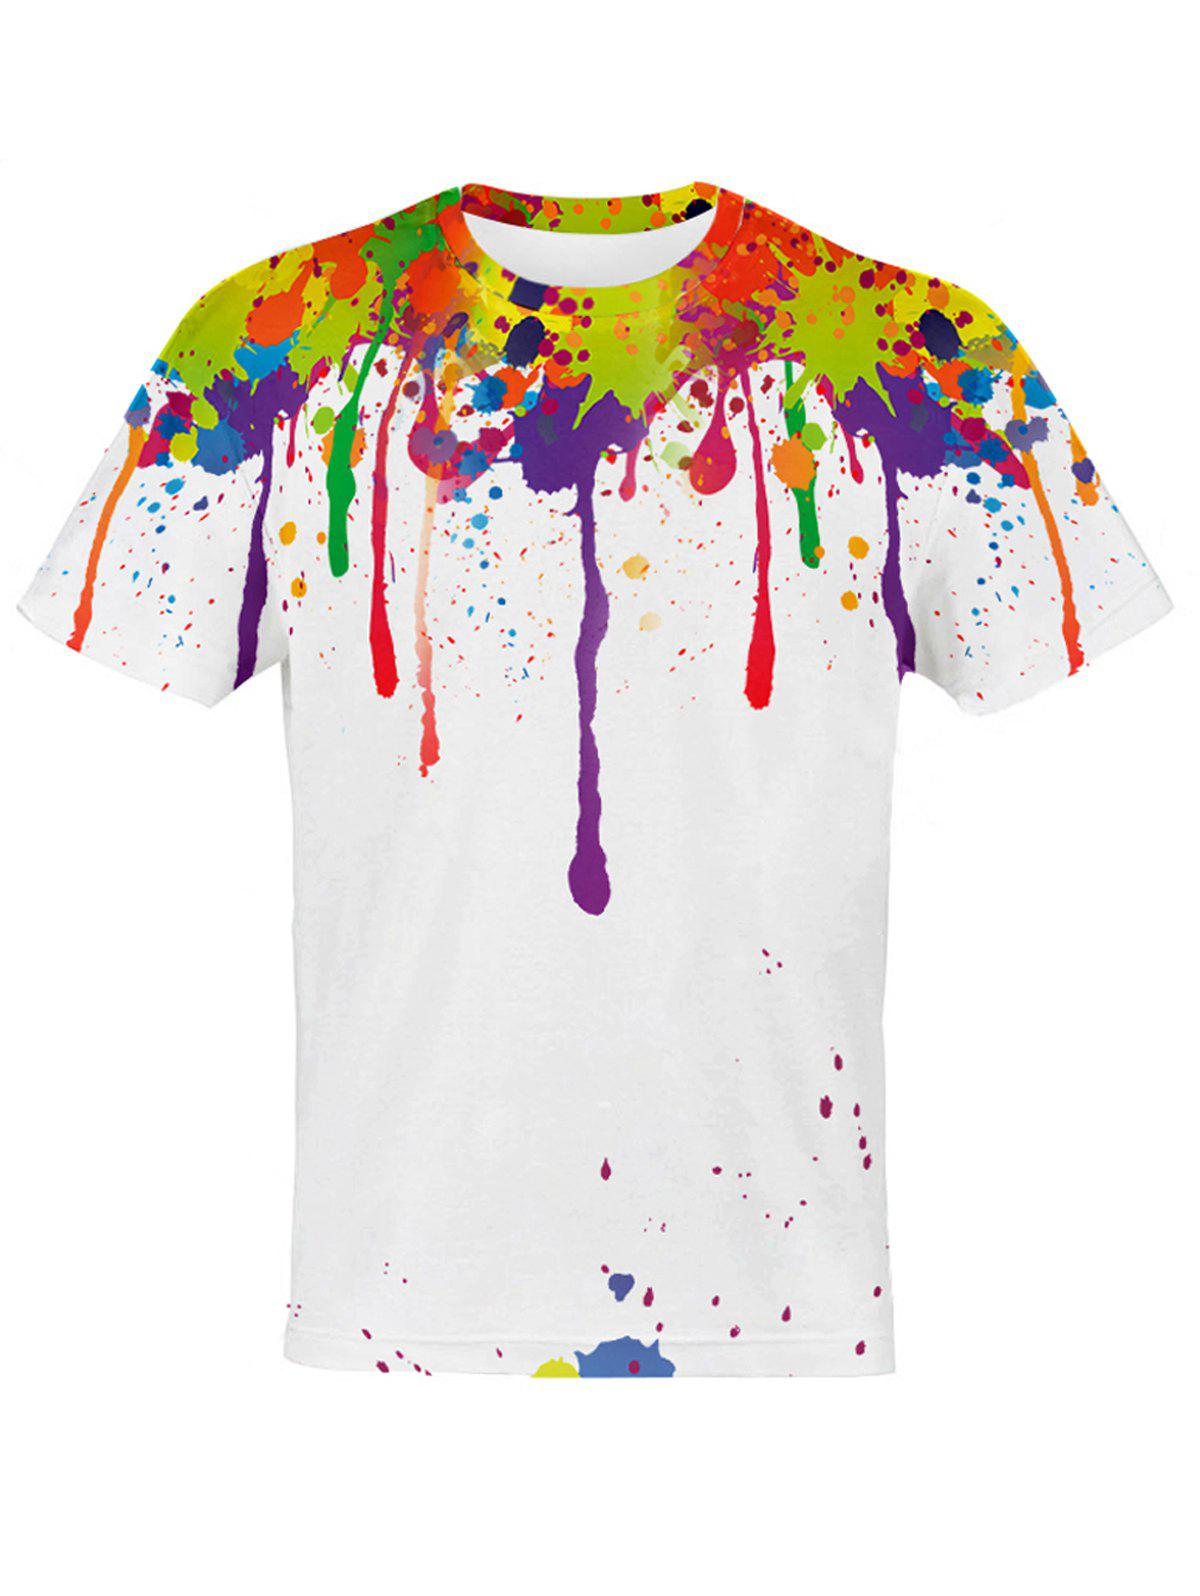 Fashion Men's Round Neck 3D Colorful Splash-Ink Pattern Slimming Short Sleeves T-Shirt